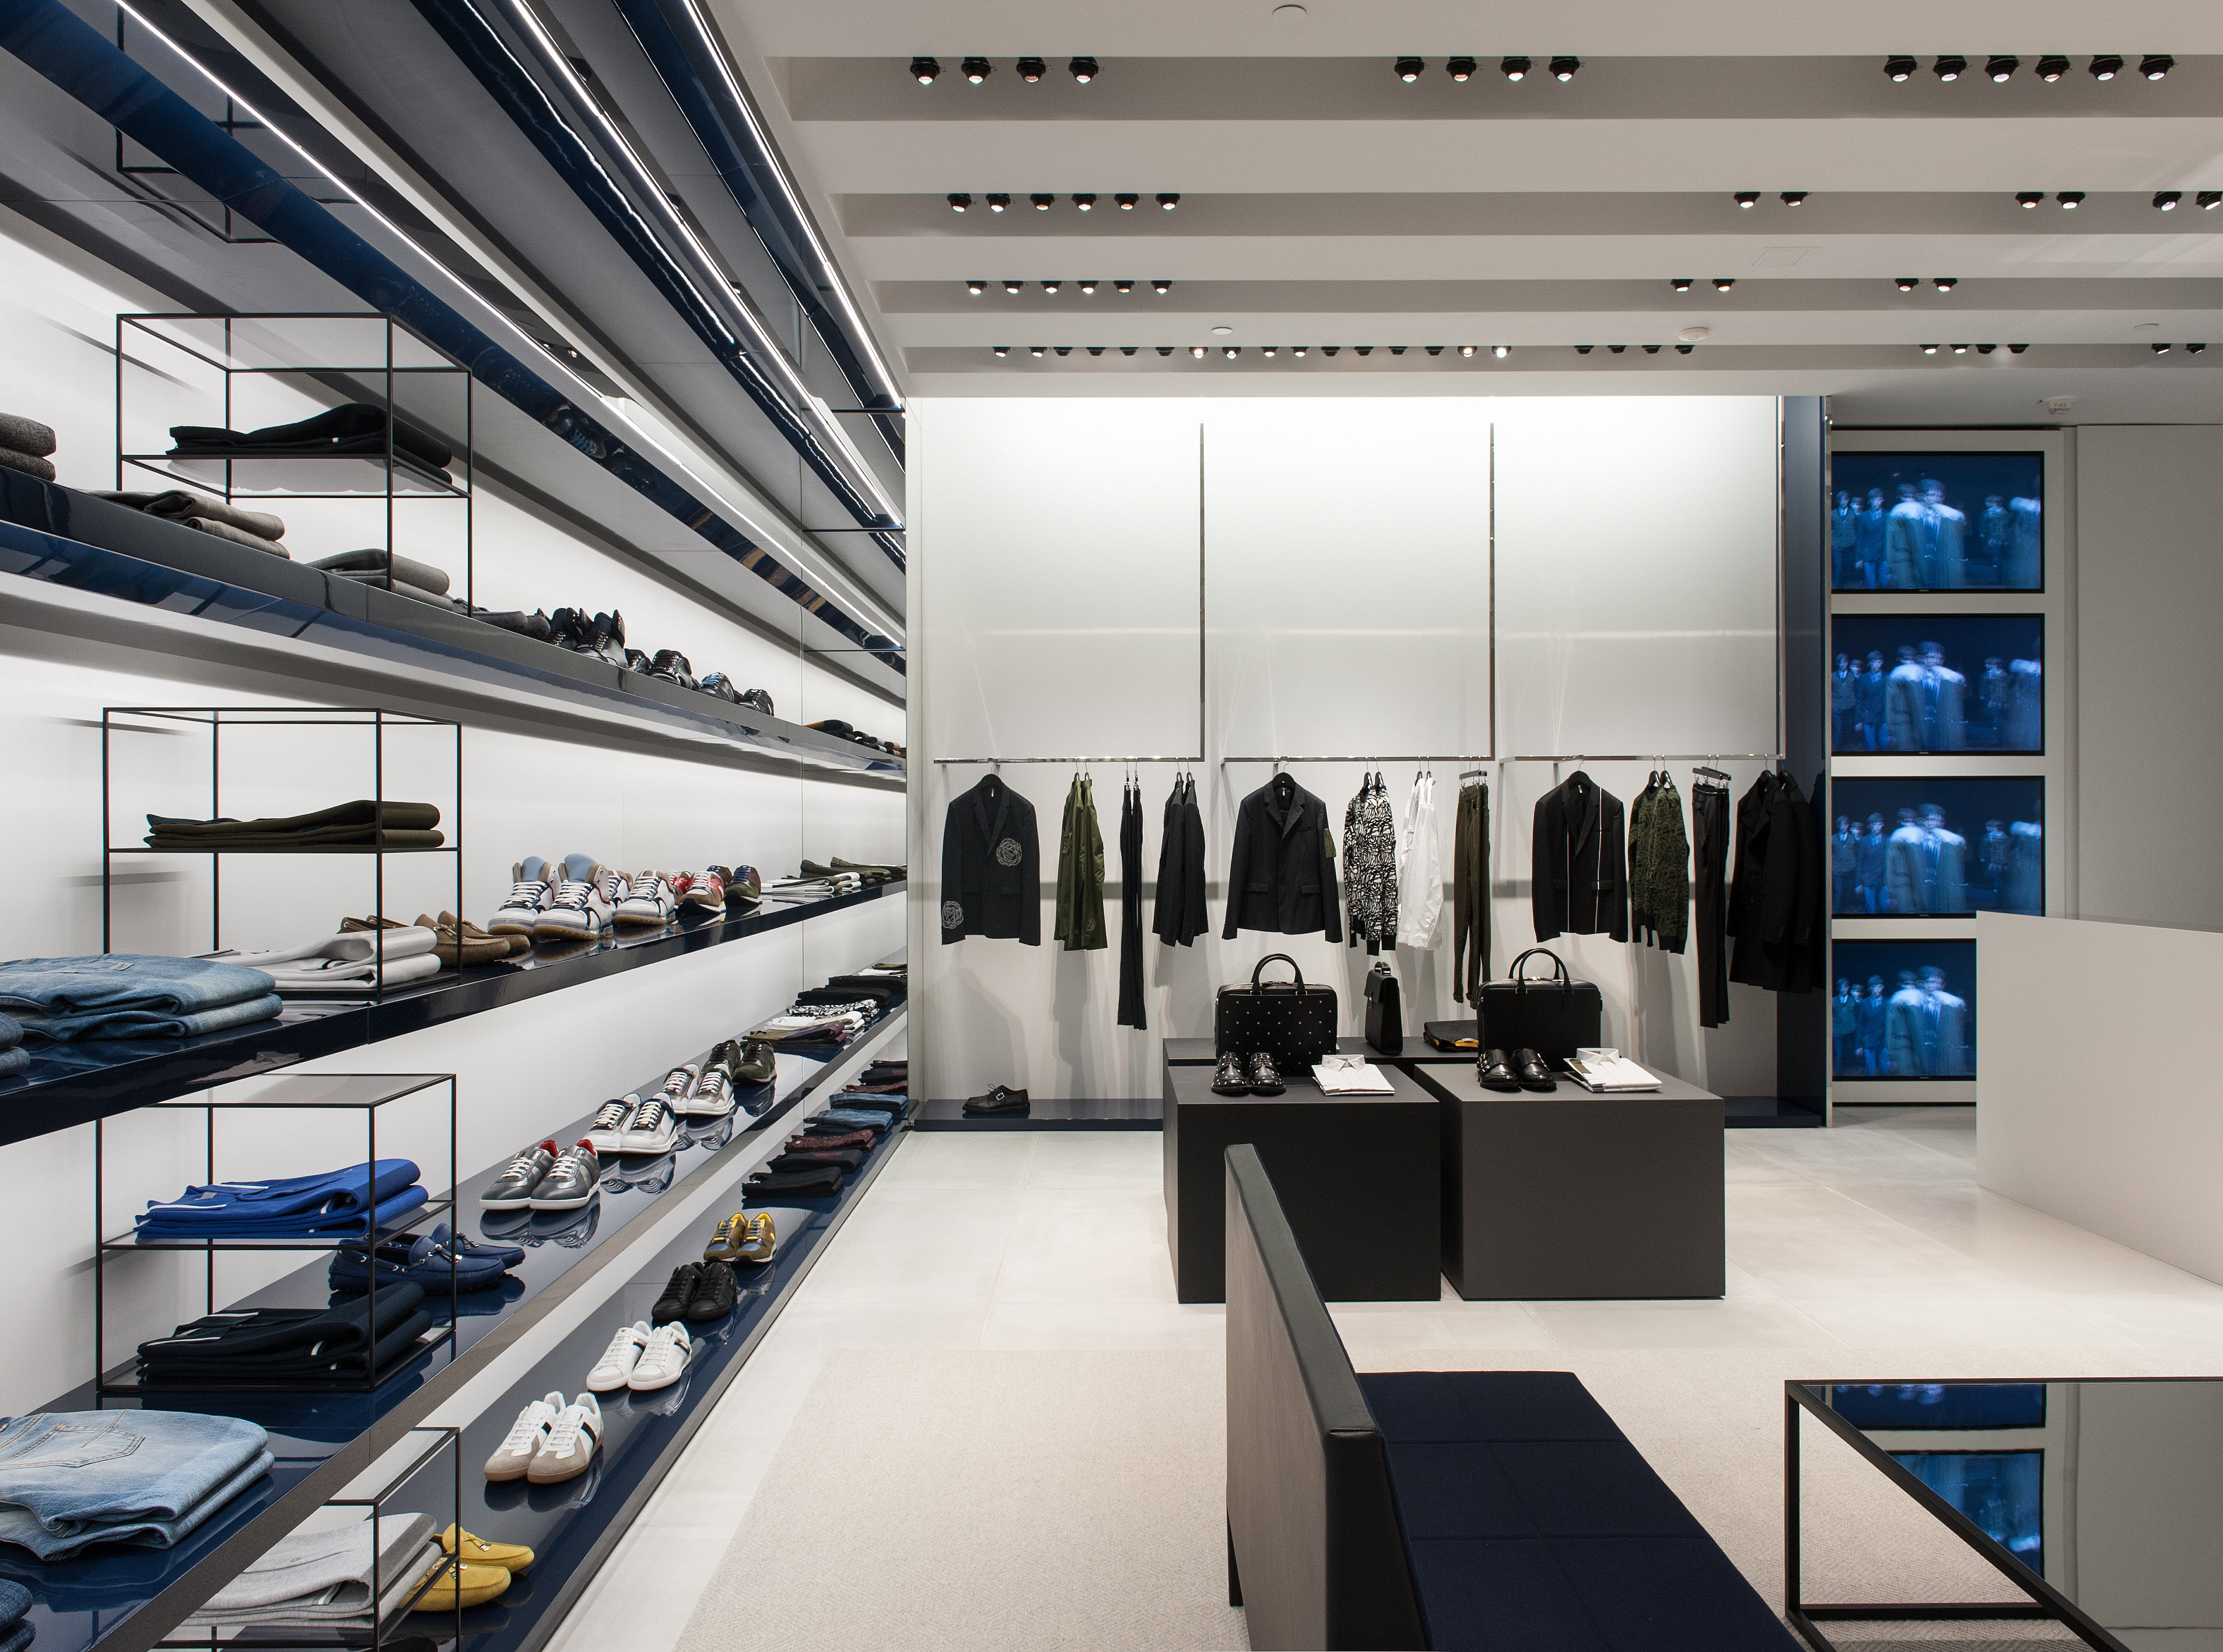 Dior Homme Says Aloha To Hawaii With New Retail Boutique